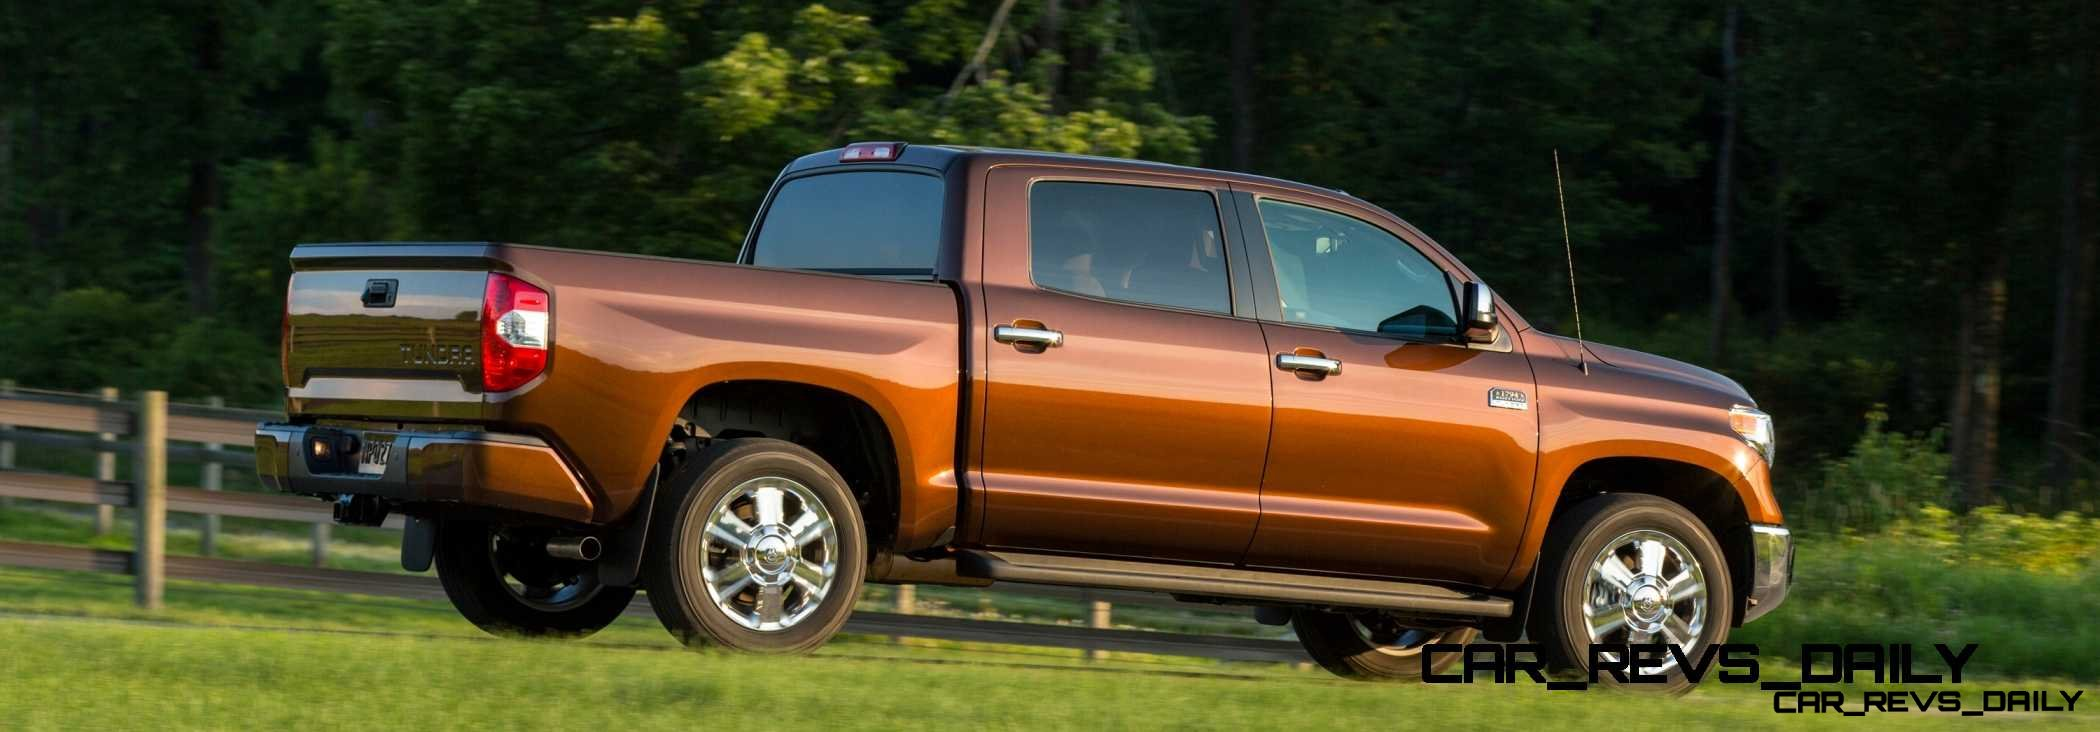 Toyota Tundra Forums : Tundra Solutions Forum